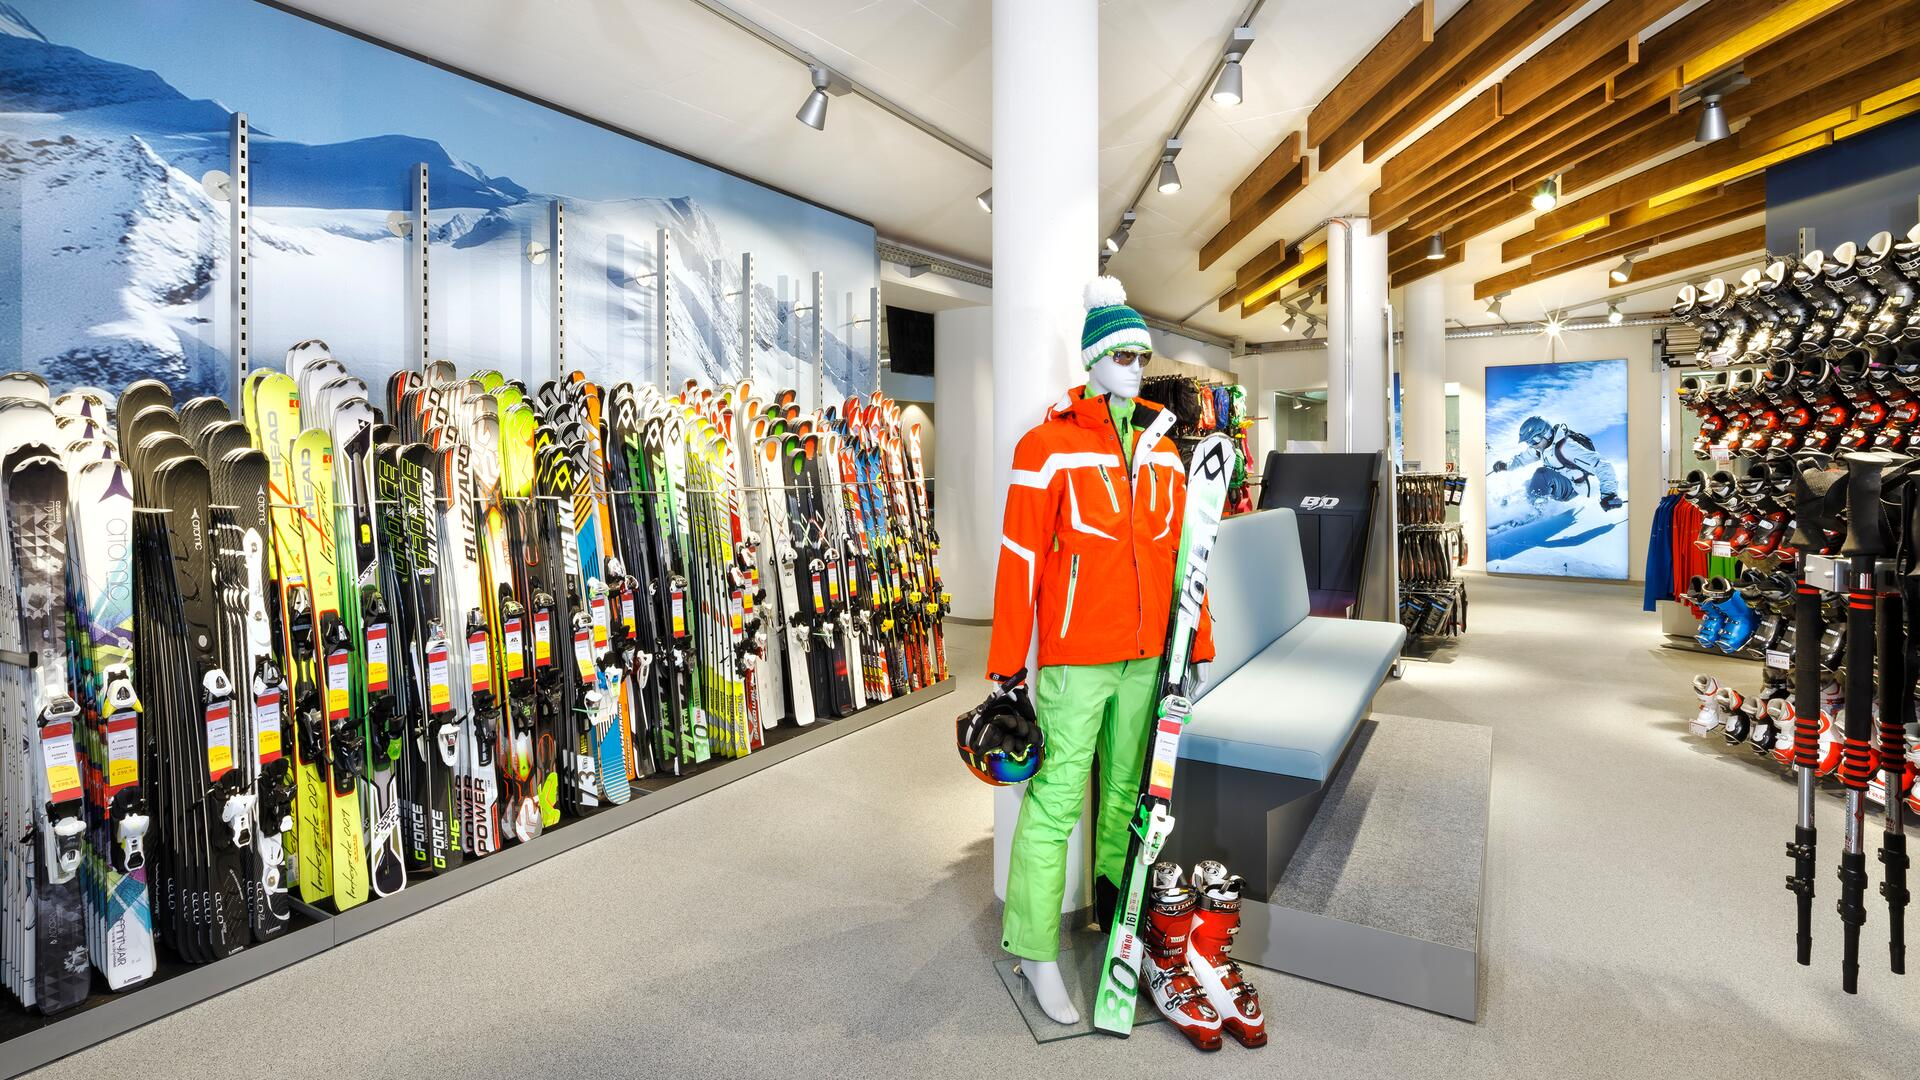 In Kaprun, you will find a wide selection of sports shops and ski-rental businesses with expert staff | © Kitzsteinhorn